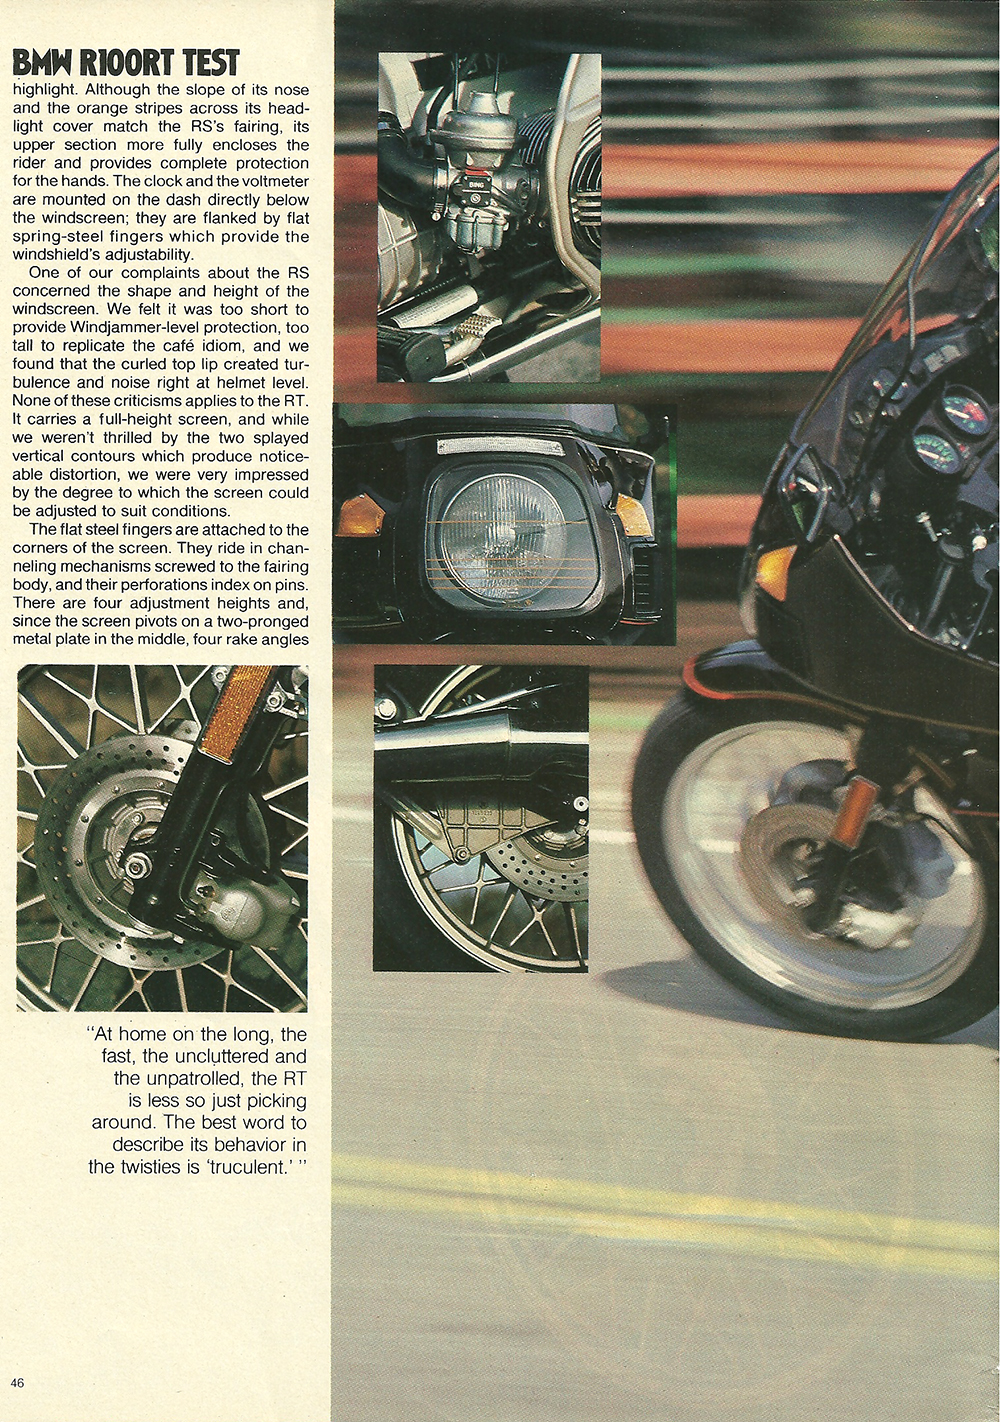 1979 BMW R100RT road test 03.jpg